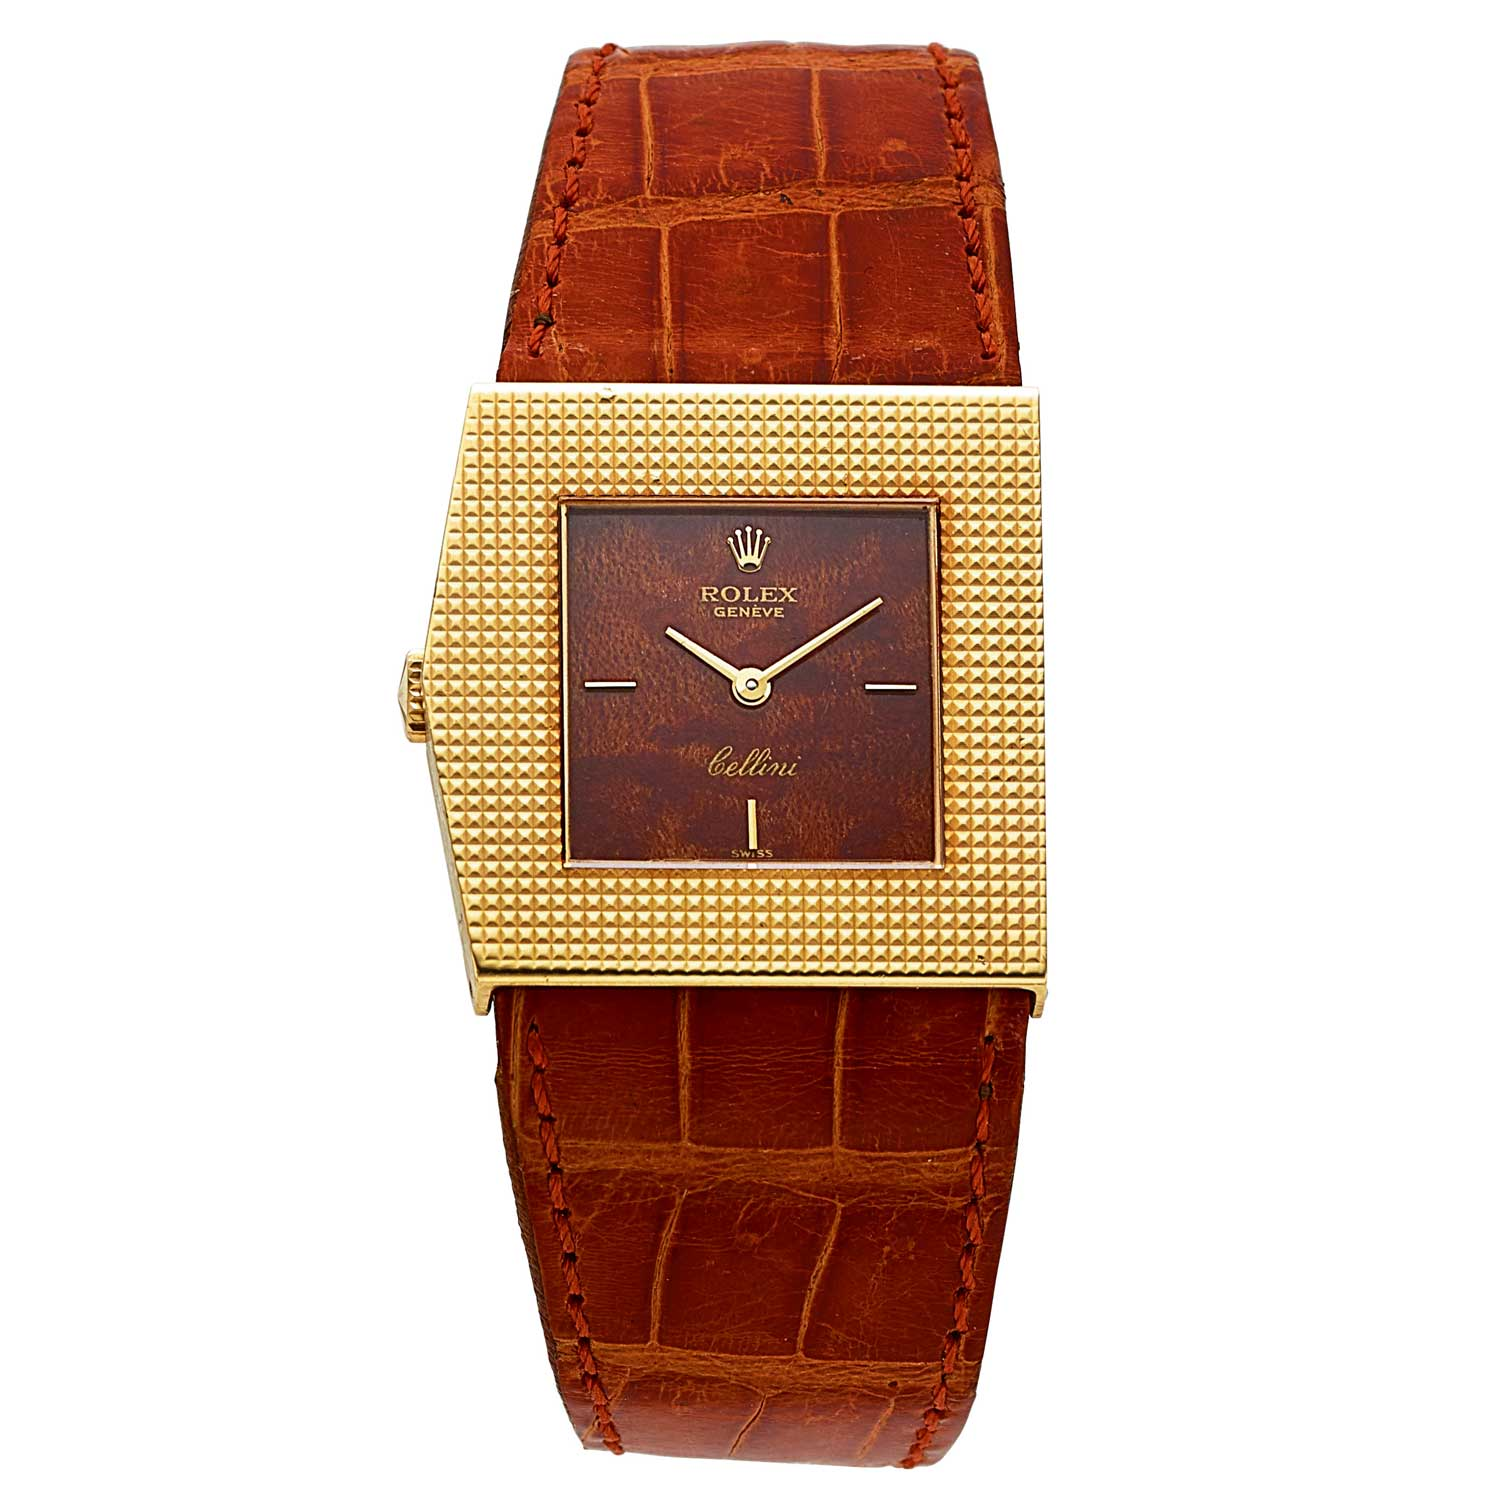 Ref. 4126 in yellow gold with hobnail-textured bezel and polished wood dial, circa 1981